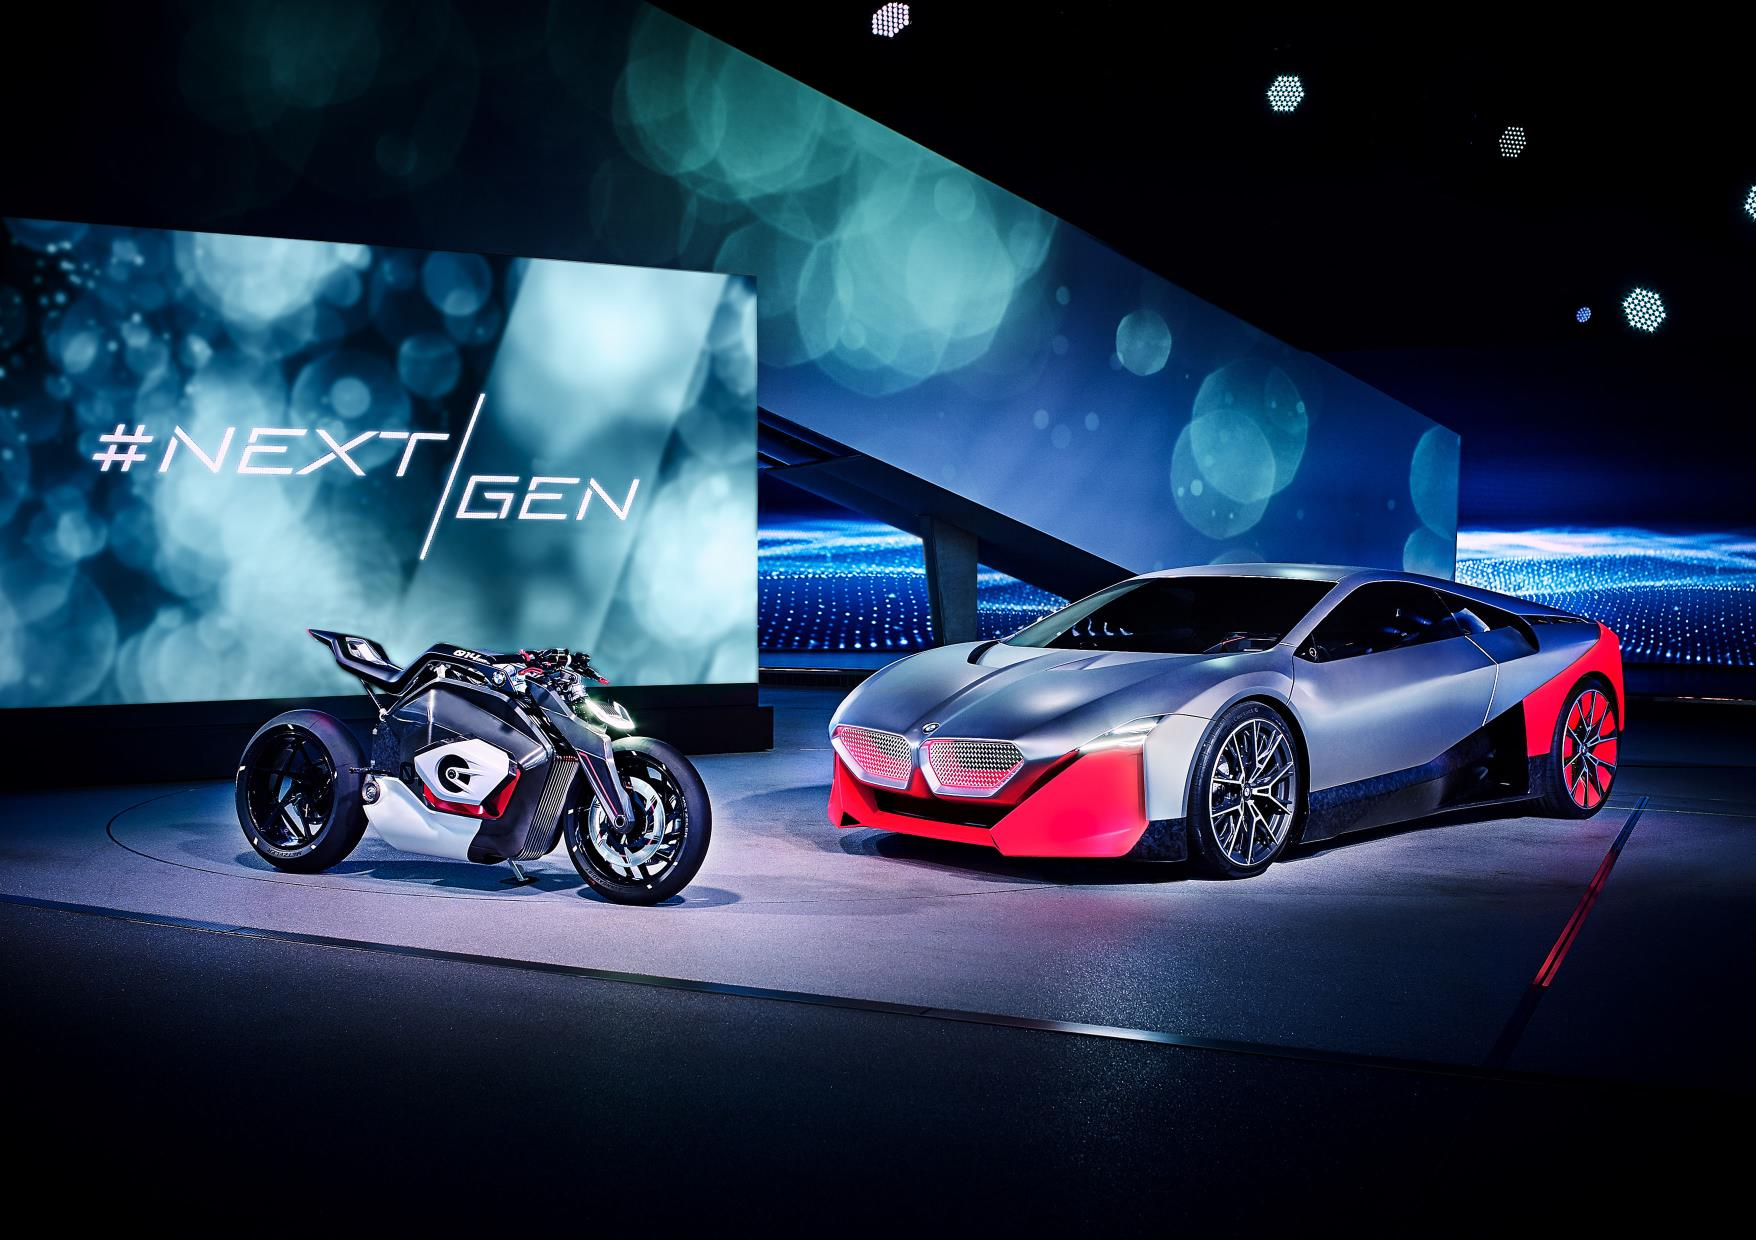 BMW Concept Bike and Car